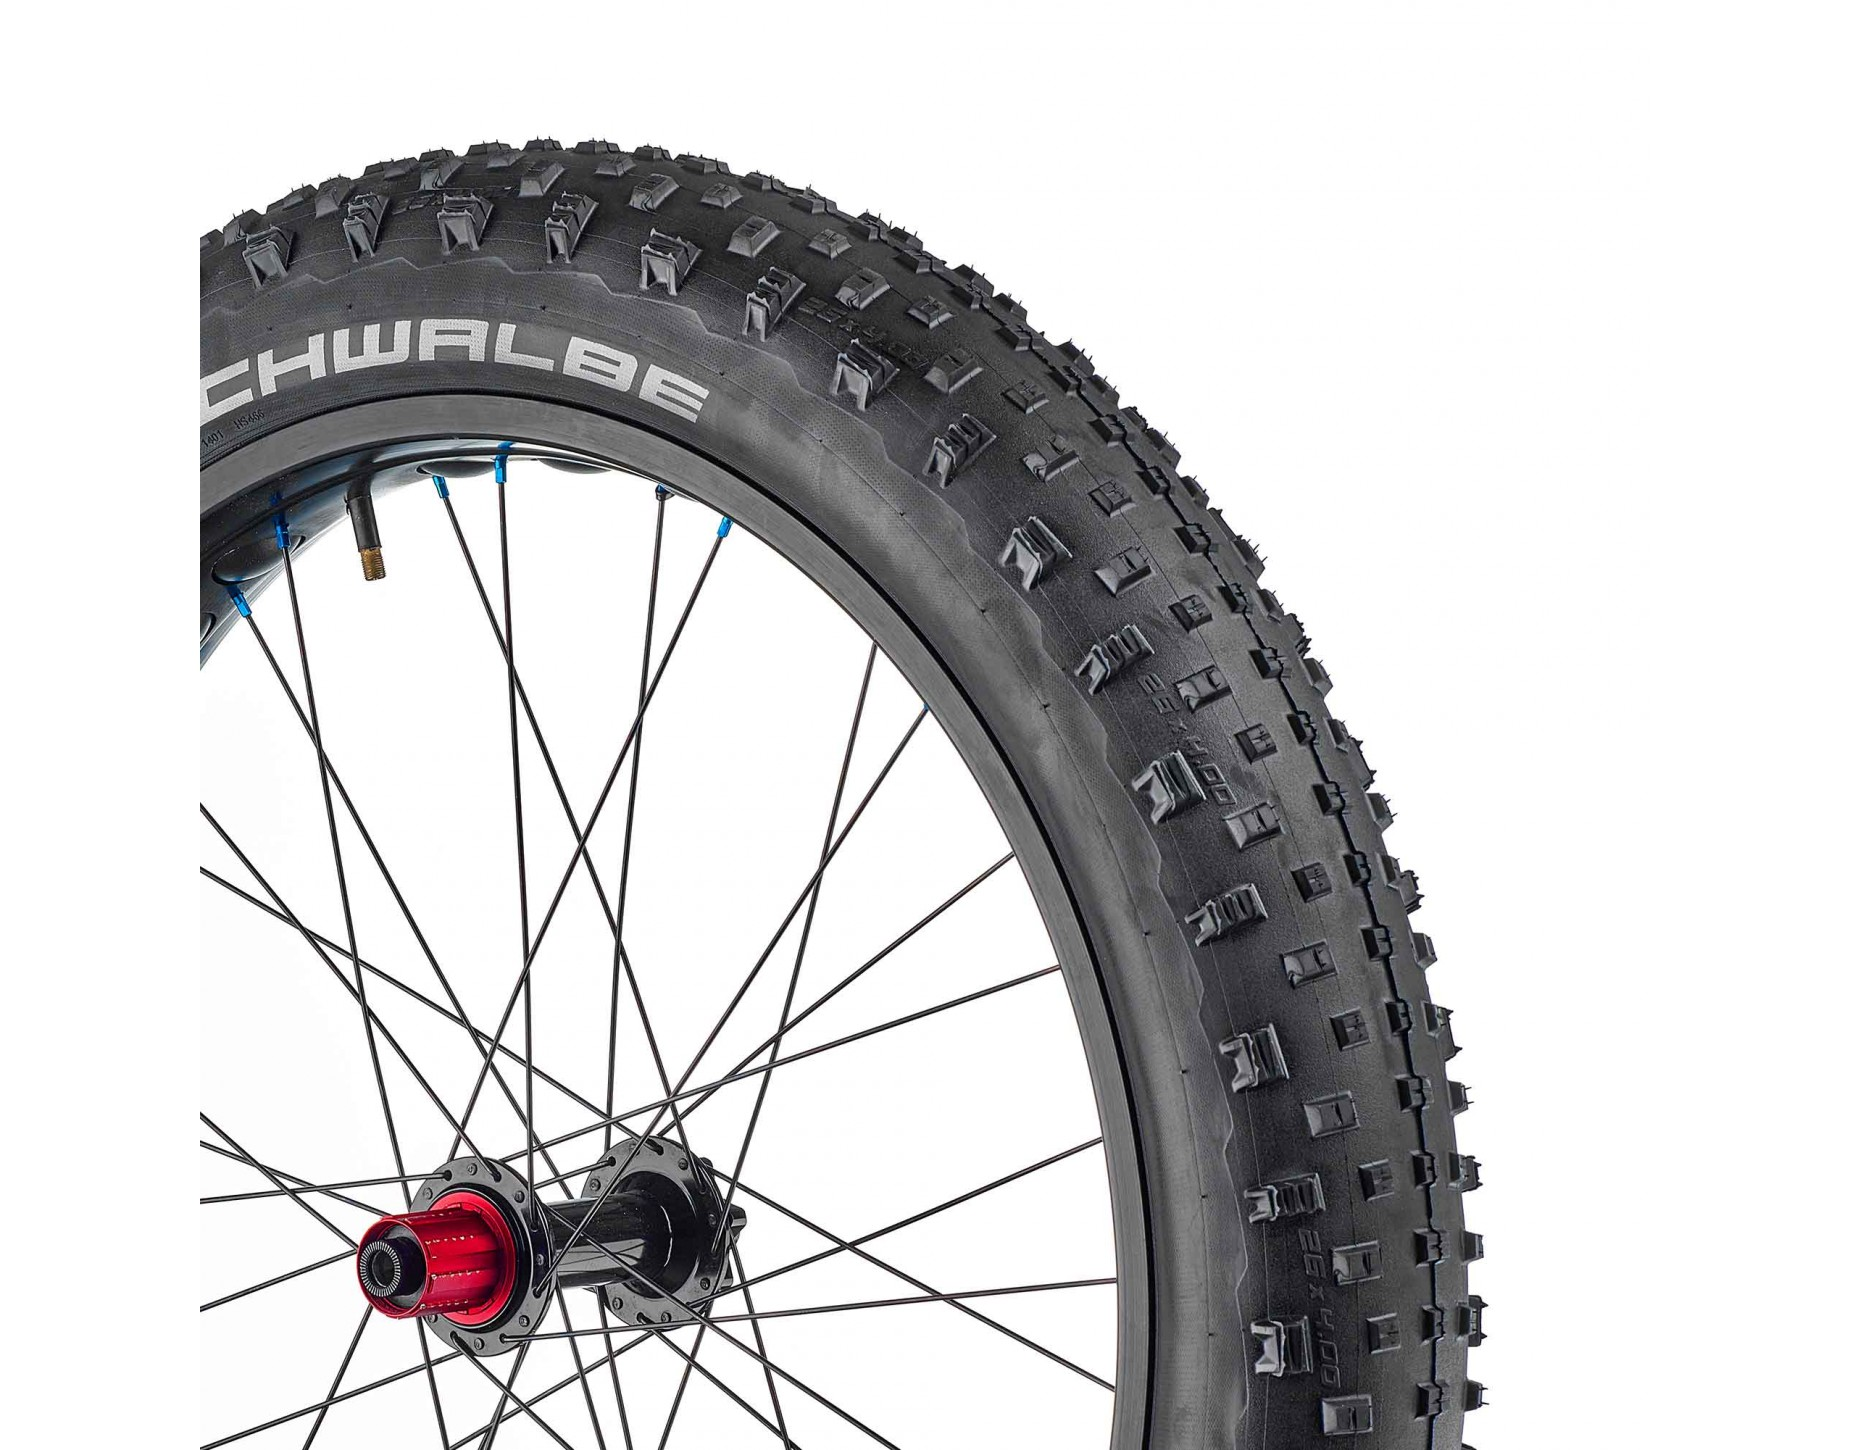 schwalbe jumbo jim evo pneu de vtt fatbike acheter pas cher la boutique en ligne. Black Bedroom Furniture Sets. Home Design Ideas